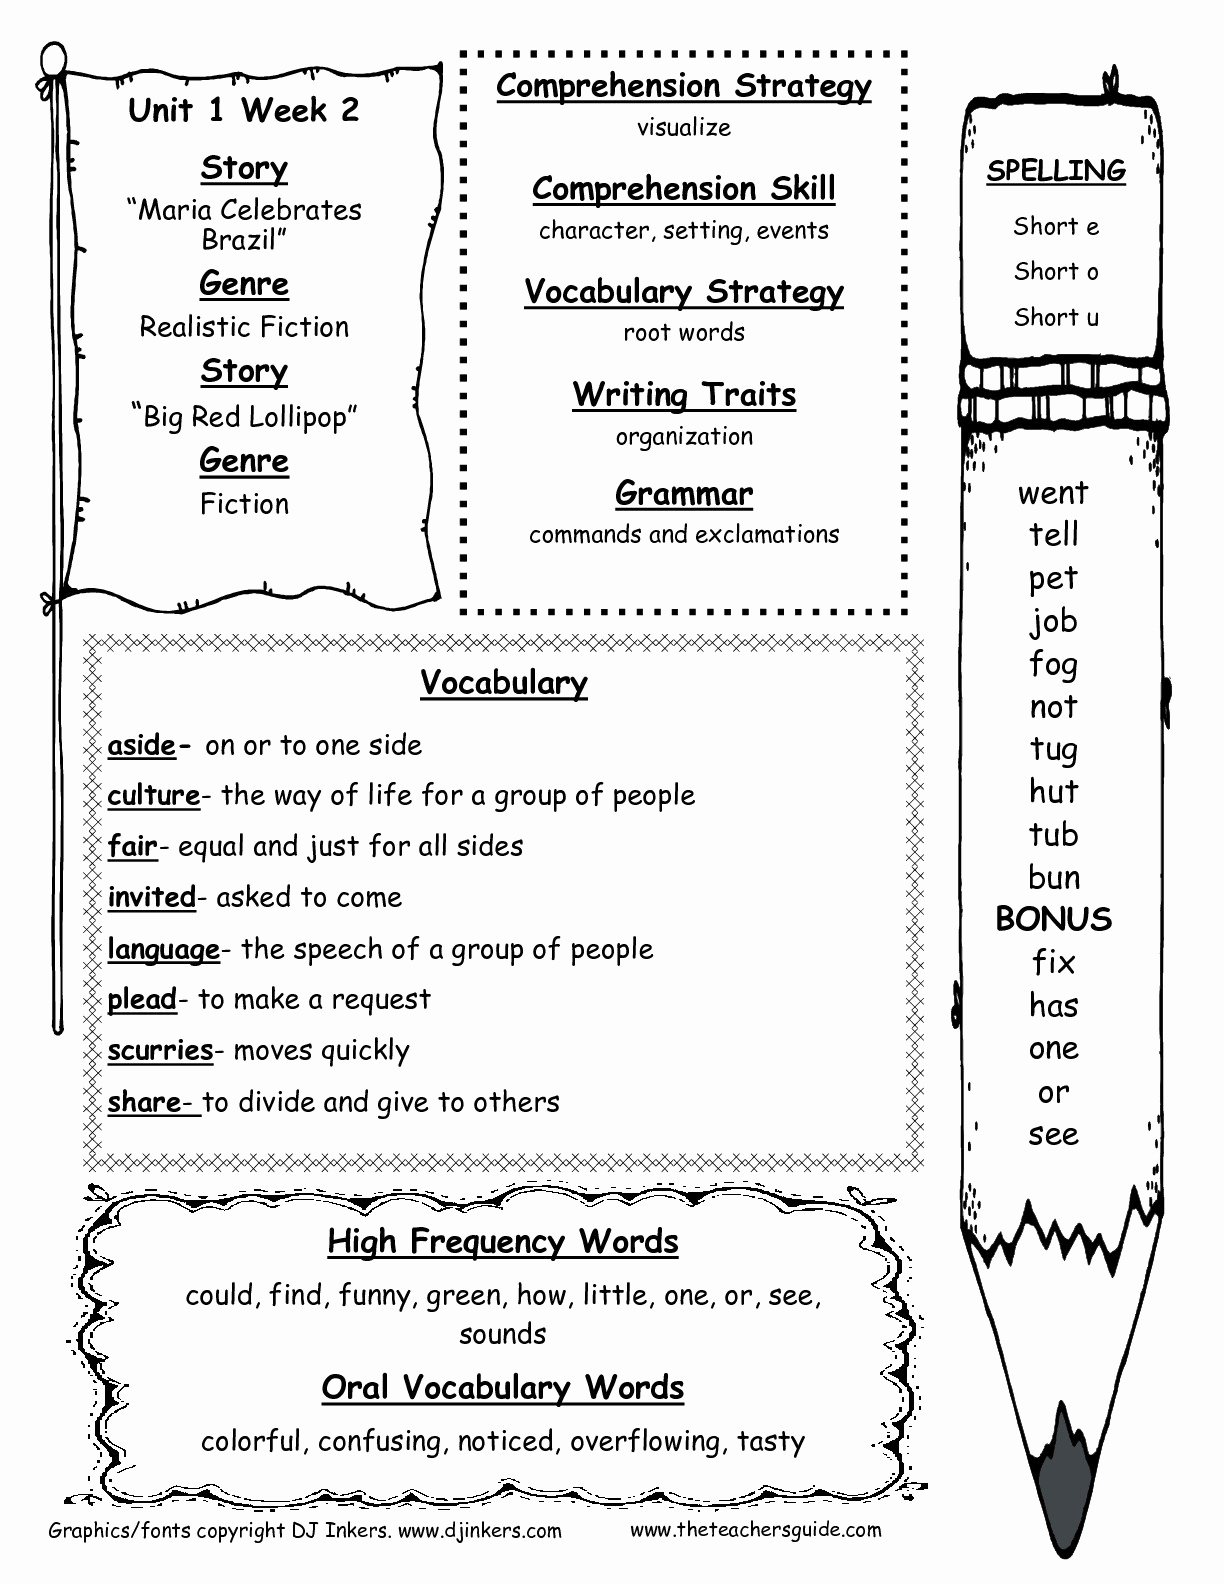 Inflectional Endings Worksheets 2nd Grade Best Of 20 Inflectional Endings Worksheets 2nd Grade